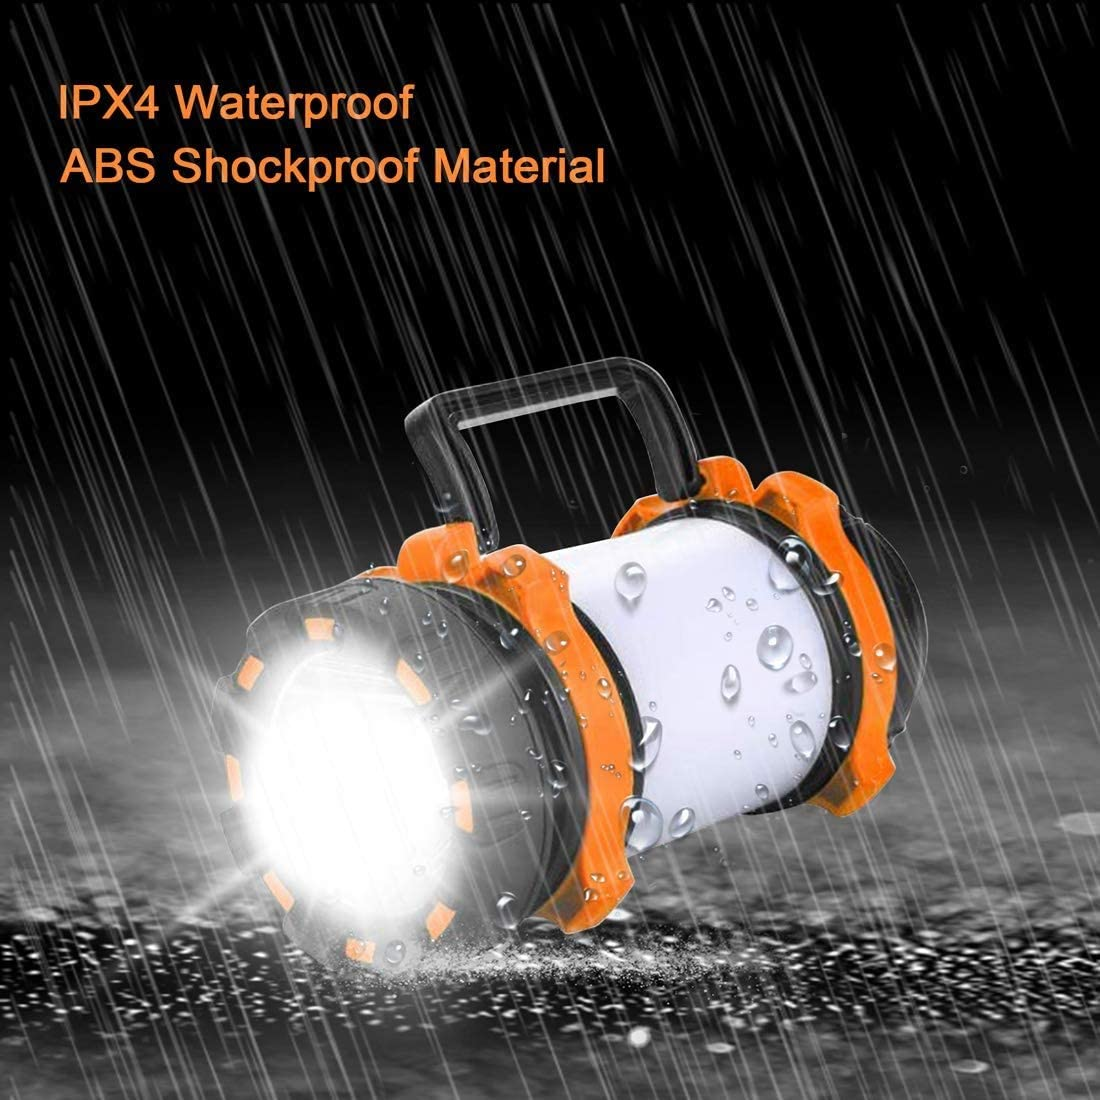 AlpsWolf Rechargeable Camping Lantern Flashlight, 800 Lumens, 6 Lighting Modes, 4000mAh PowerCore, IPX4 Waterproof, Portable for Emergency, Perfect for Searching, Camping, Hiking, Outdoor Activities: Sports & Outdoors